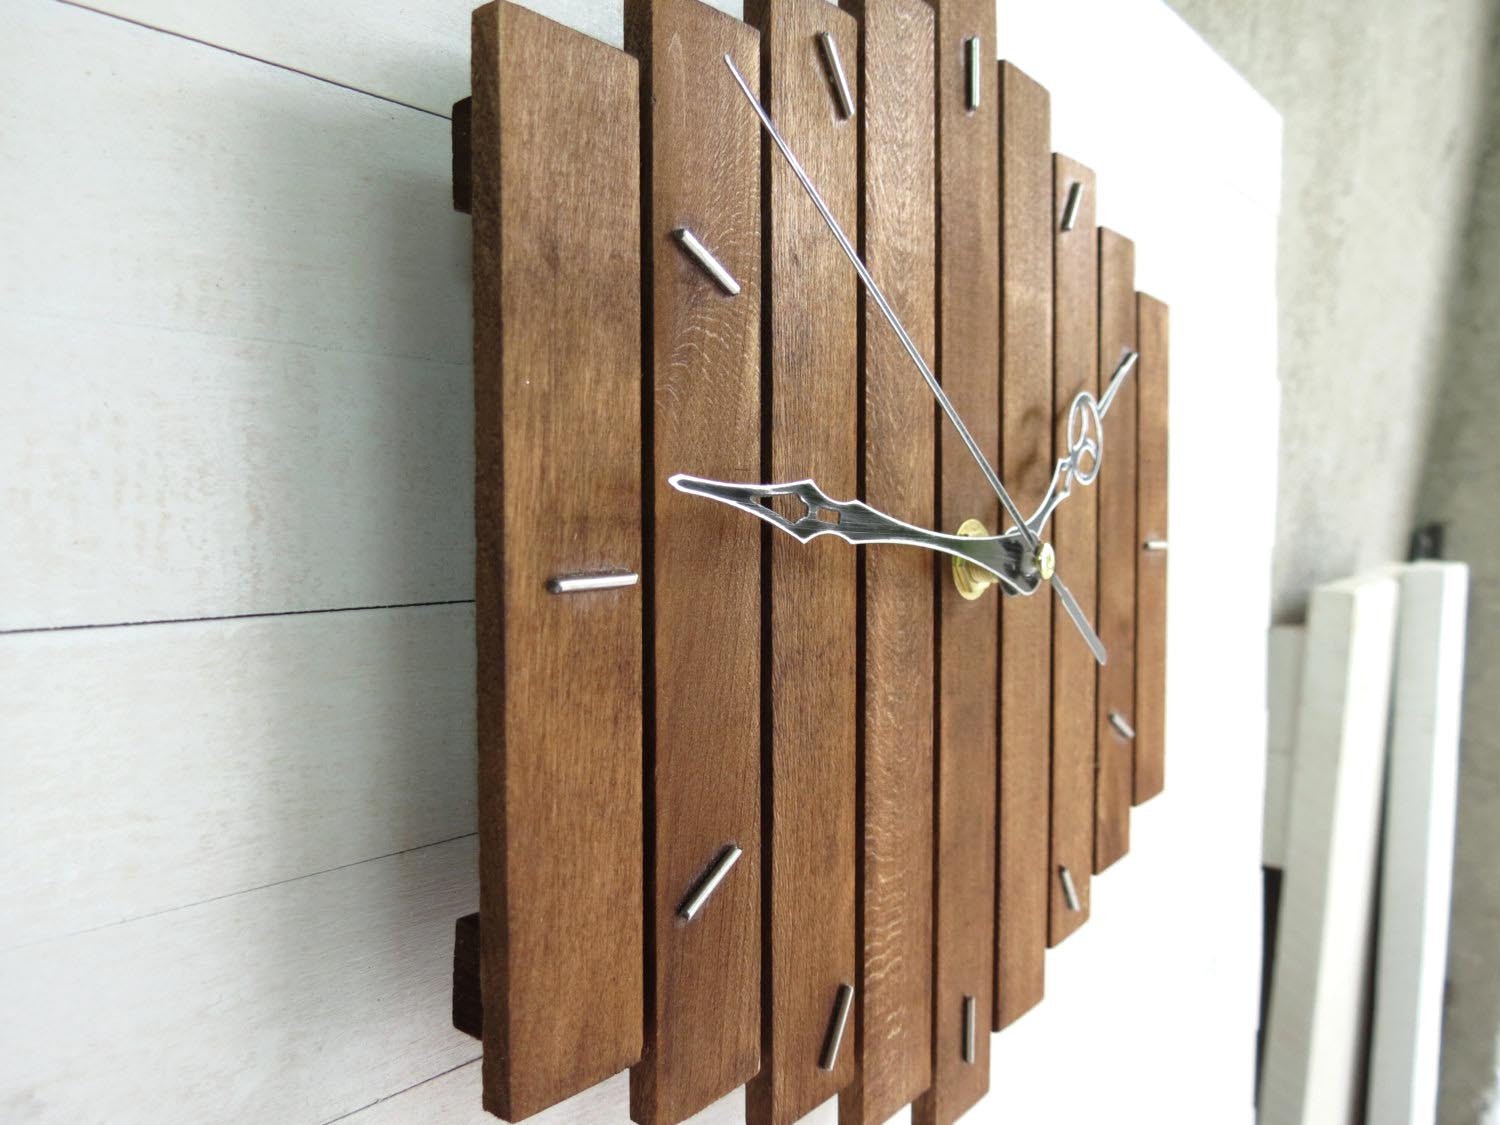 Romb silent wooden wall clock 20x20cm by paladim handmade romb i wall clock 20x20cm 8x8 paladim handmade amipublicfo Choice Image